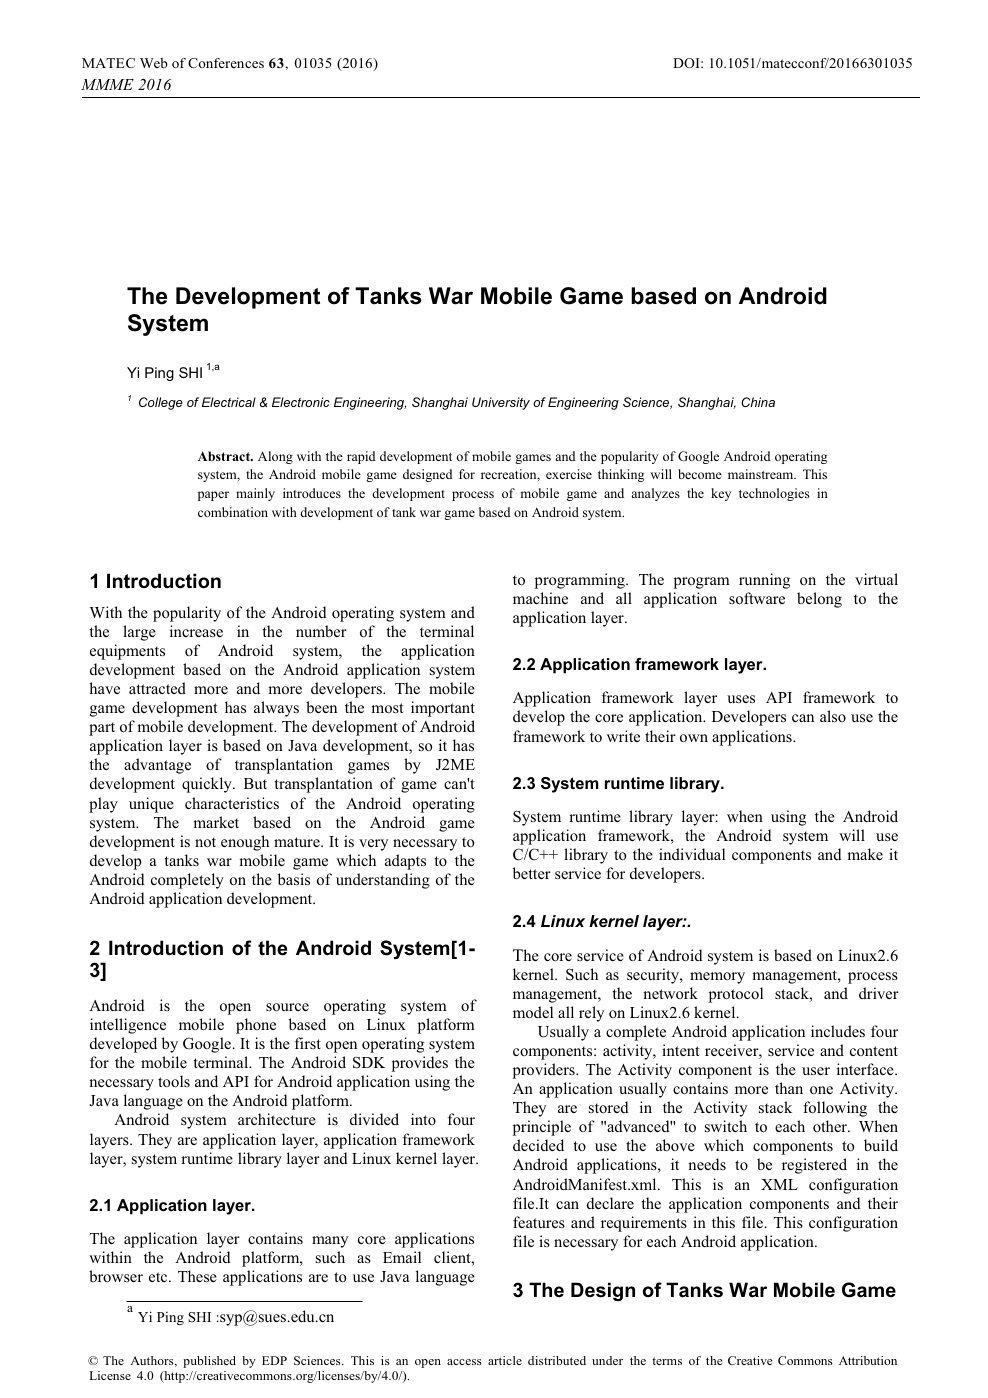 The Development of Tanks War Mobile Game based on Android